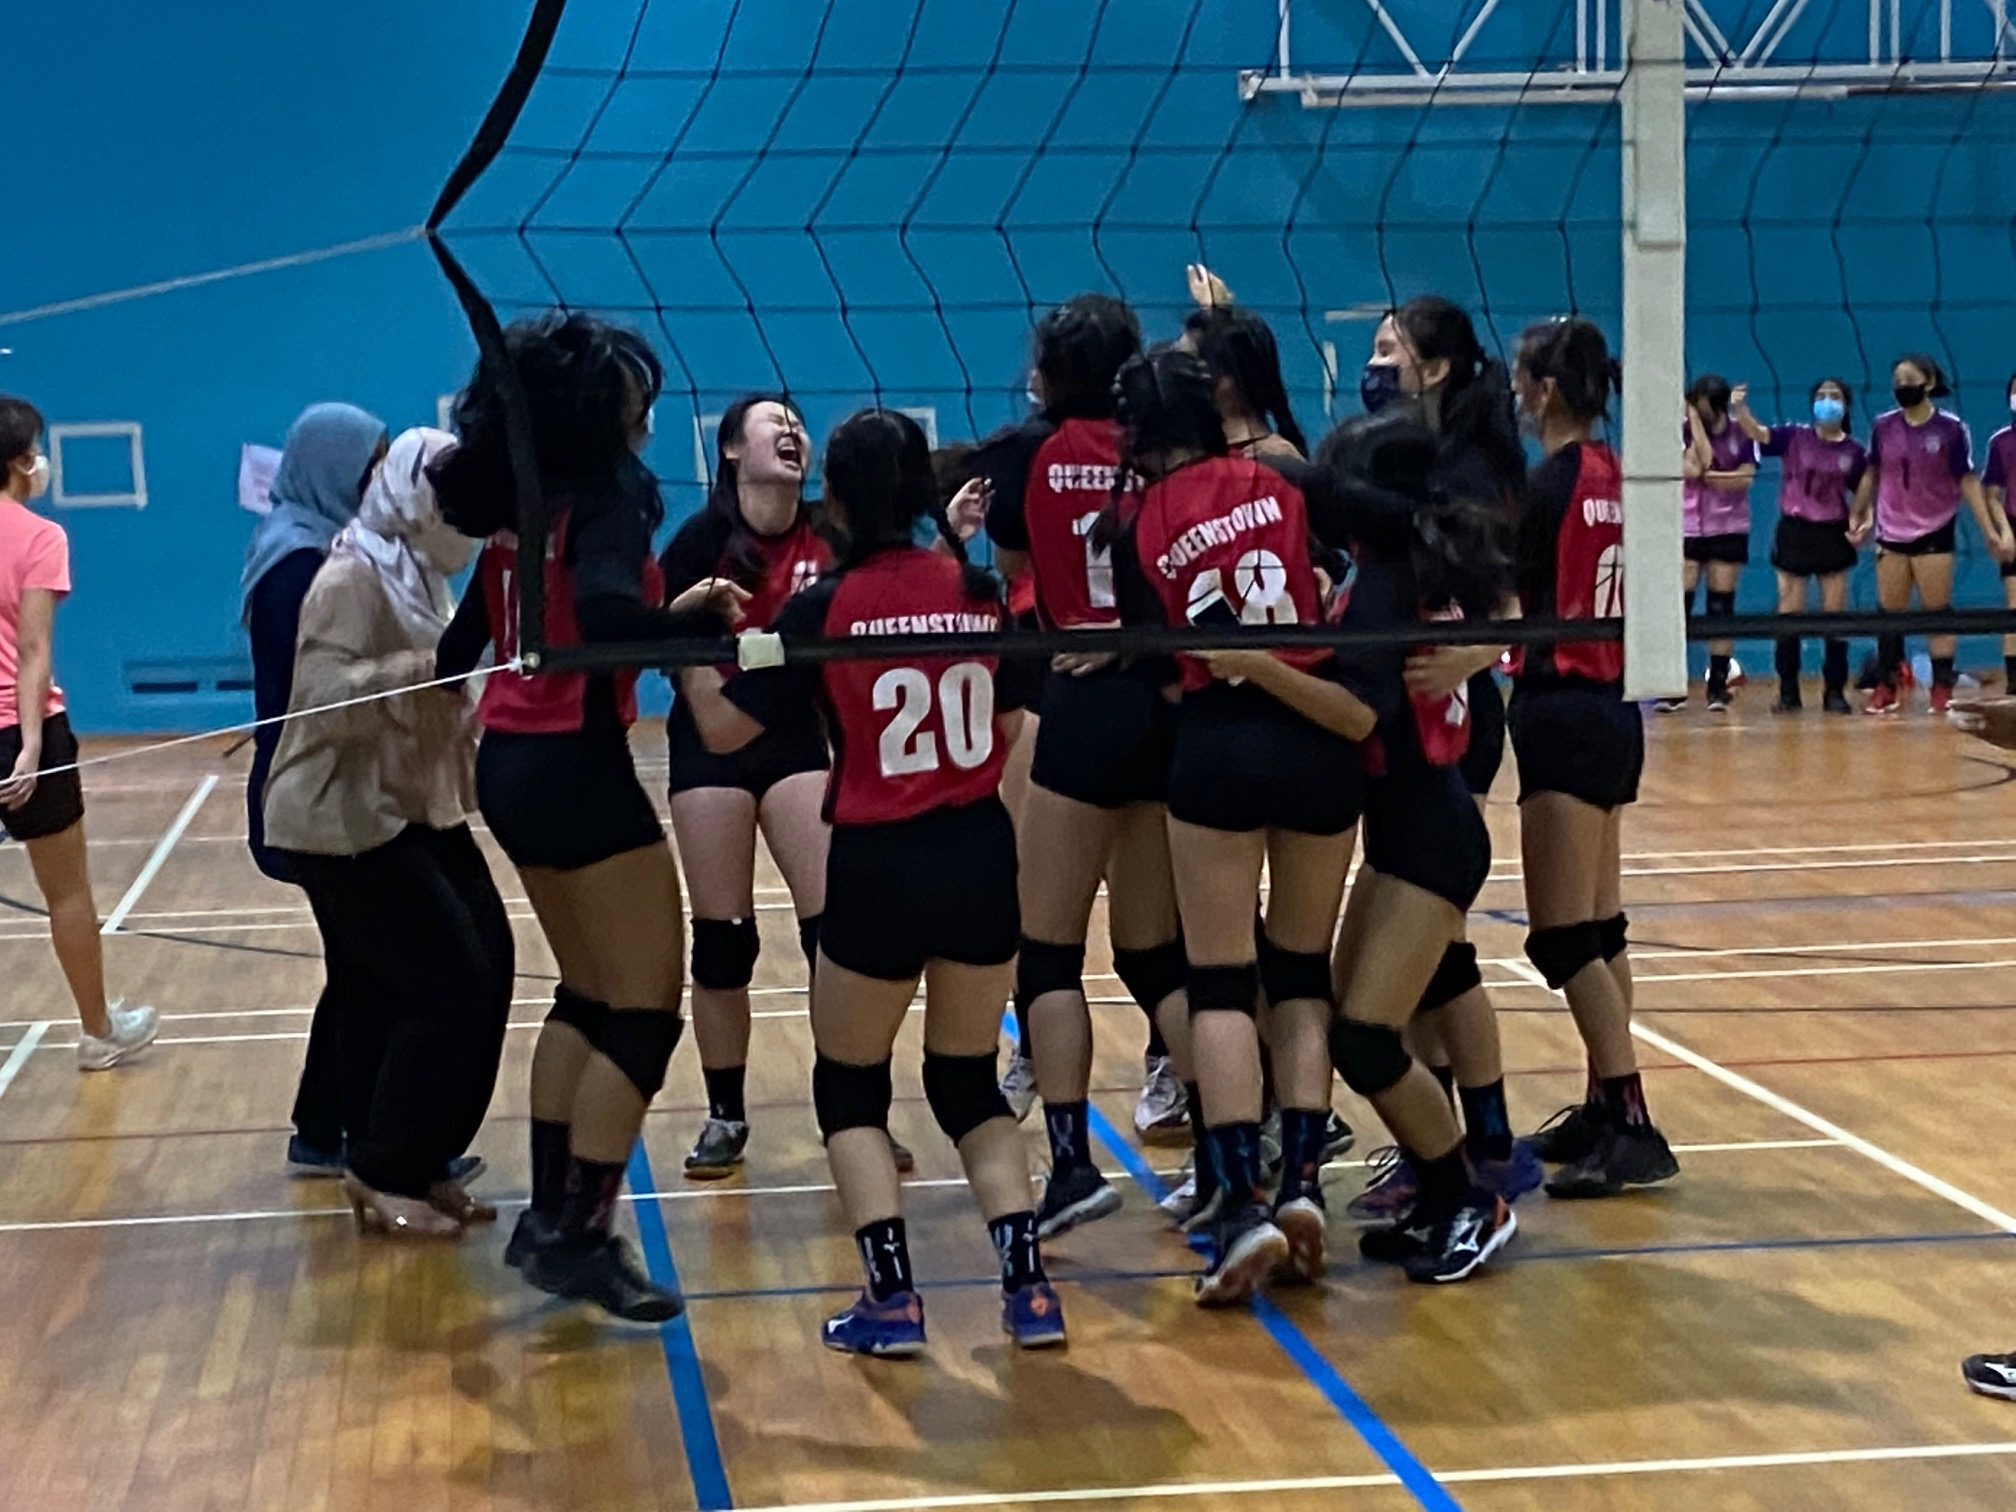 NSG South Zone B Div girls volleyball final - Queenstown (red) v Queensway (purple) 4-1